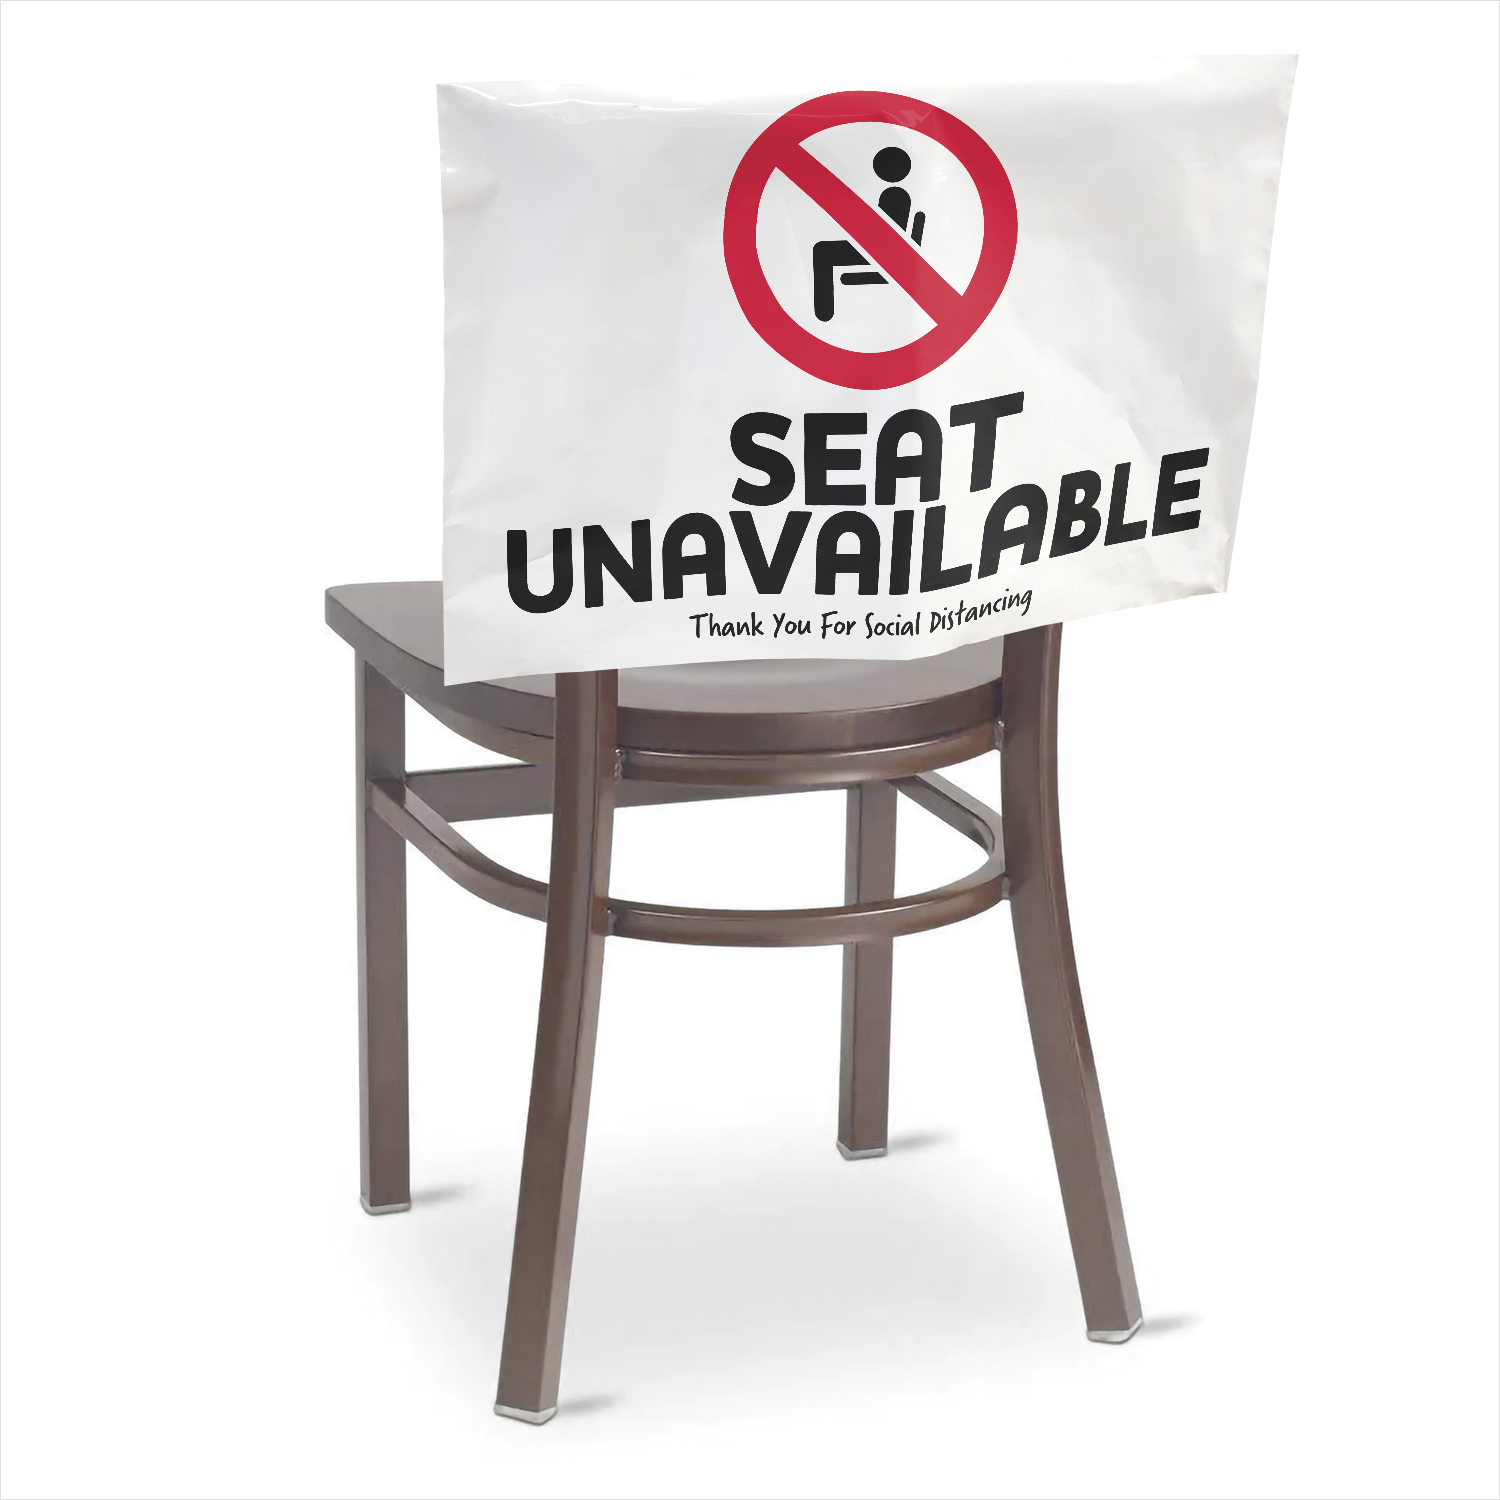 https://www.sswprinting.com/images/products_gallery_images/595801_Chair-Back_Seat-Unavailable_hi-res_1_.png